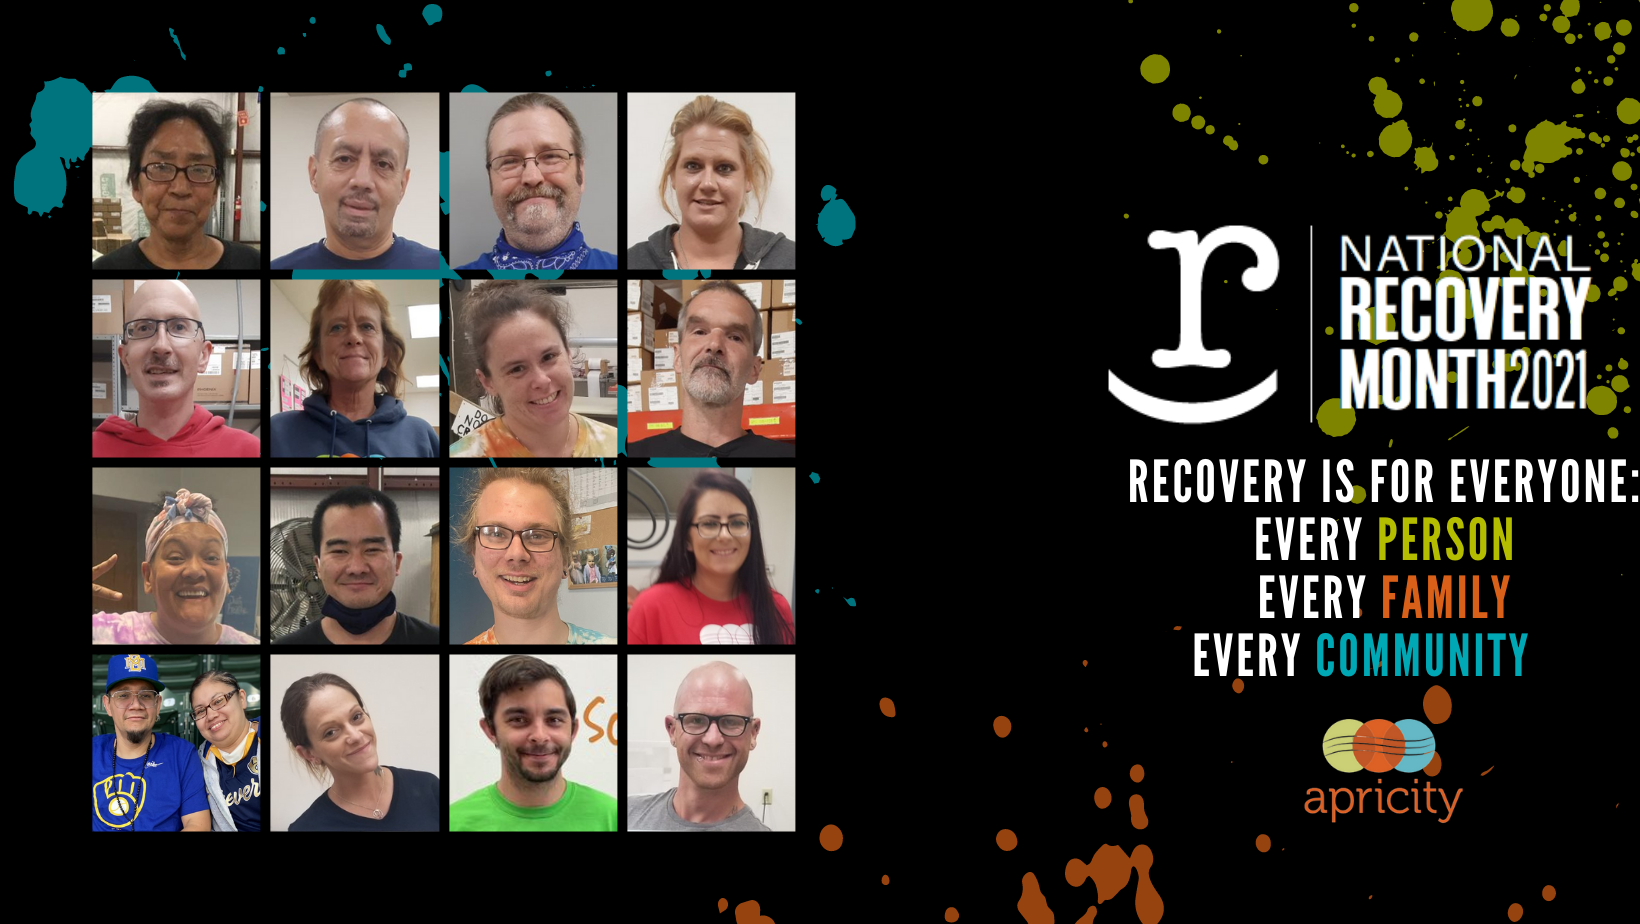 Support Recovery and Change A Life Today! All gifts DOUBLED UP TO $20,000 through 9/30/21. Click the DONATE button or send a gift: Apricity, 1010 Strohmeyer Dr.,  ATTN: Recovery Month, Neenah, WI 54956  (Scroll down for more details.) image